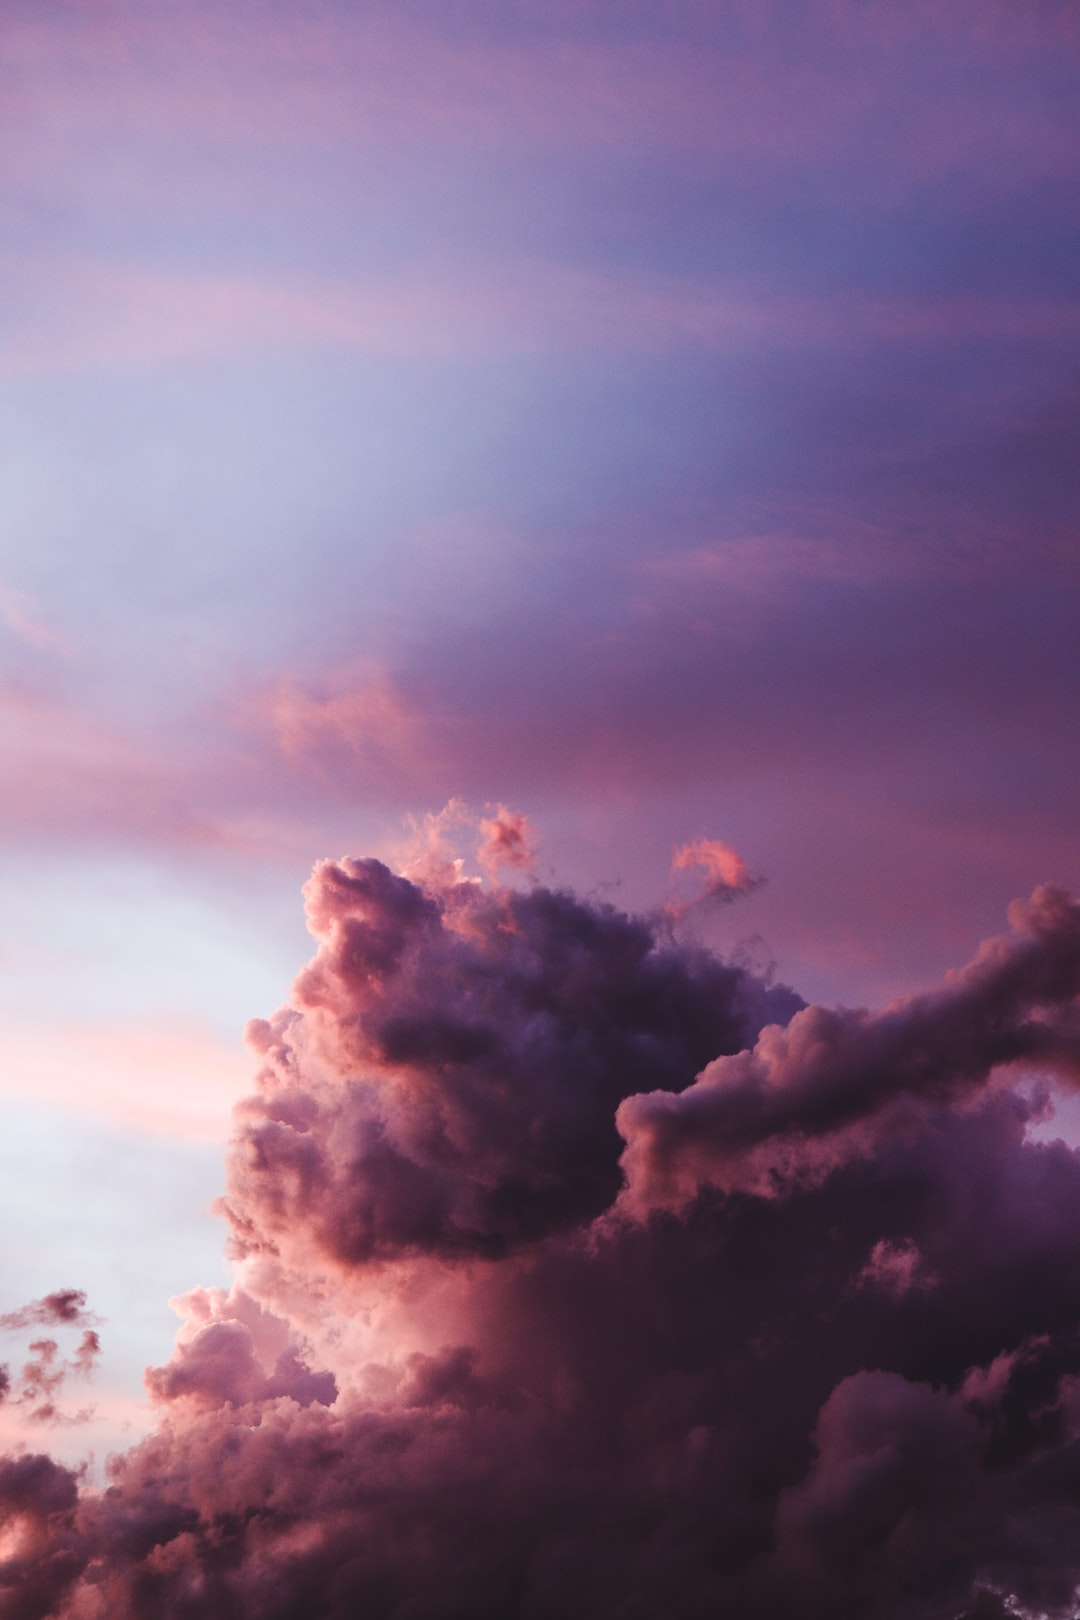 Sunset sky with cotton clouds, a full of pink and magenta cluods